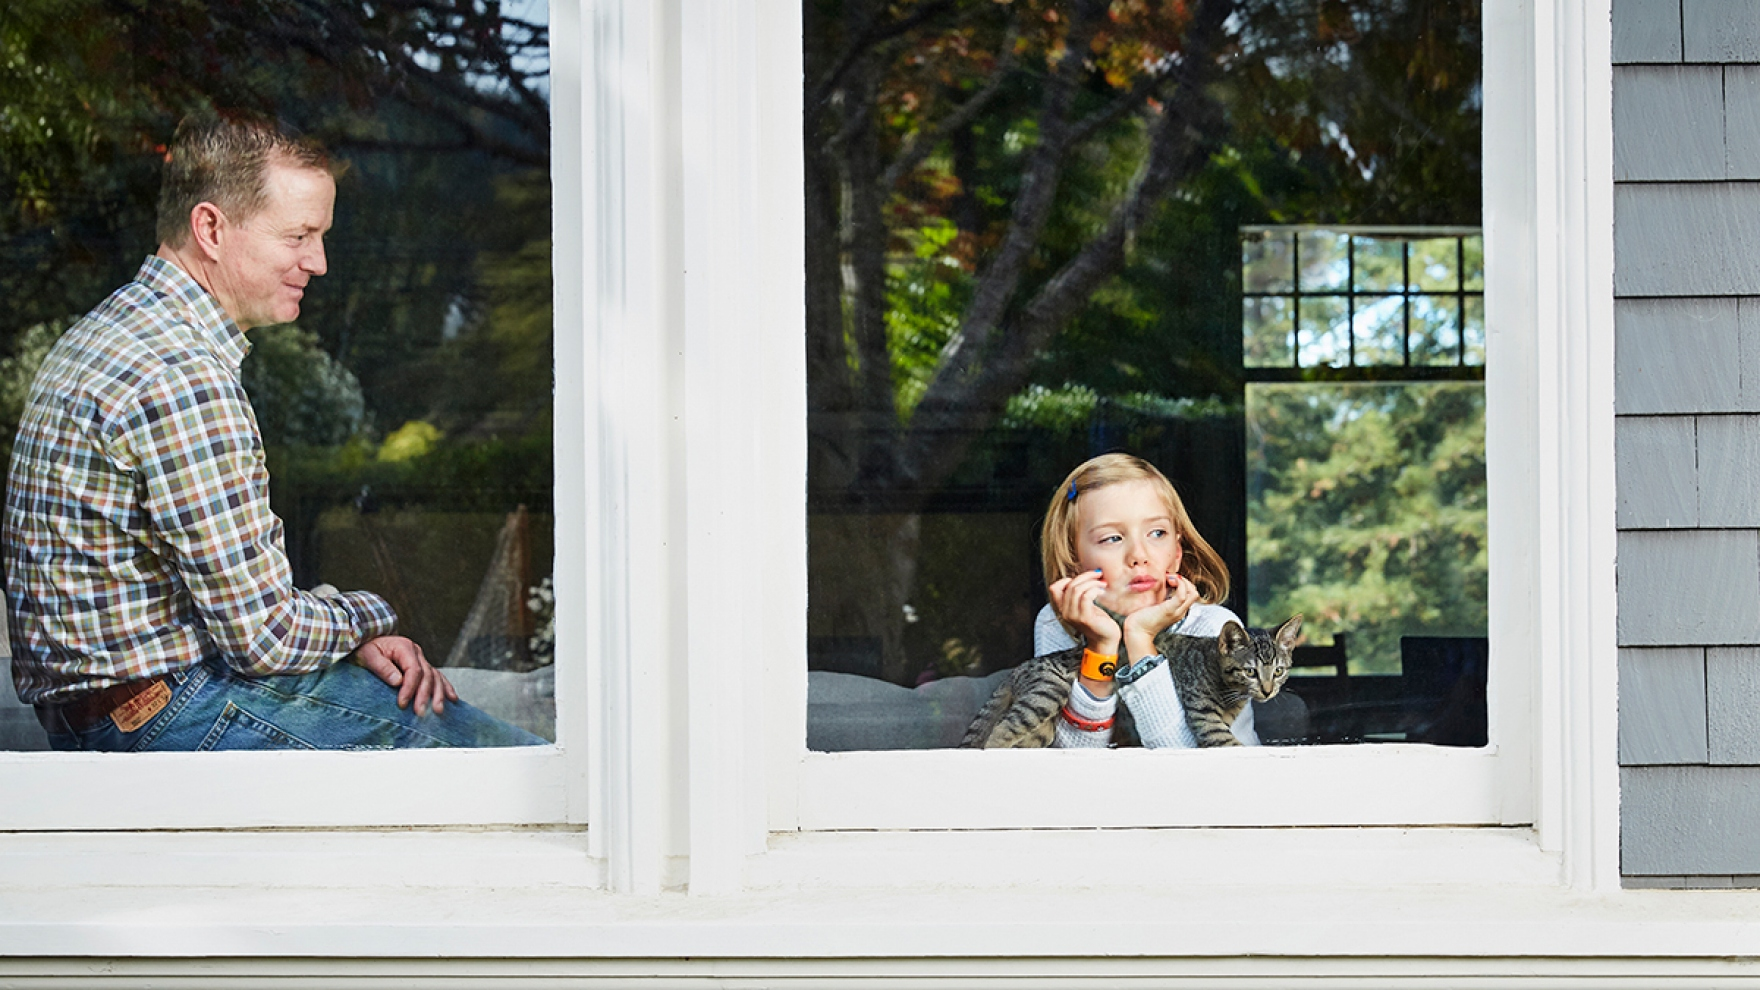 Tim Wood and his daughter at home